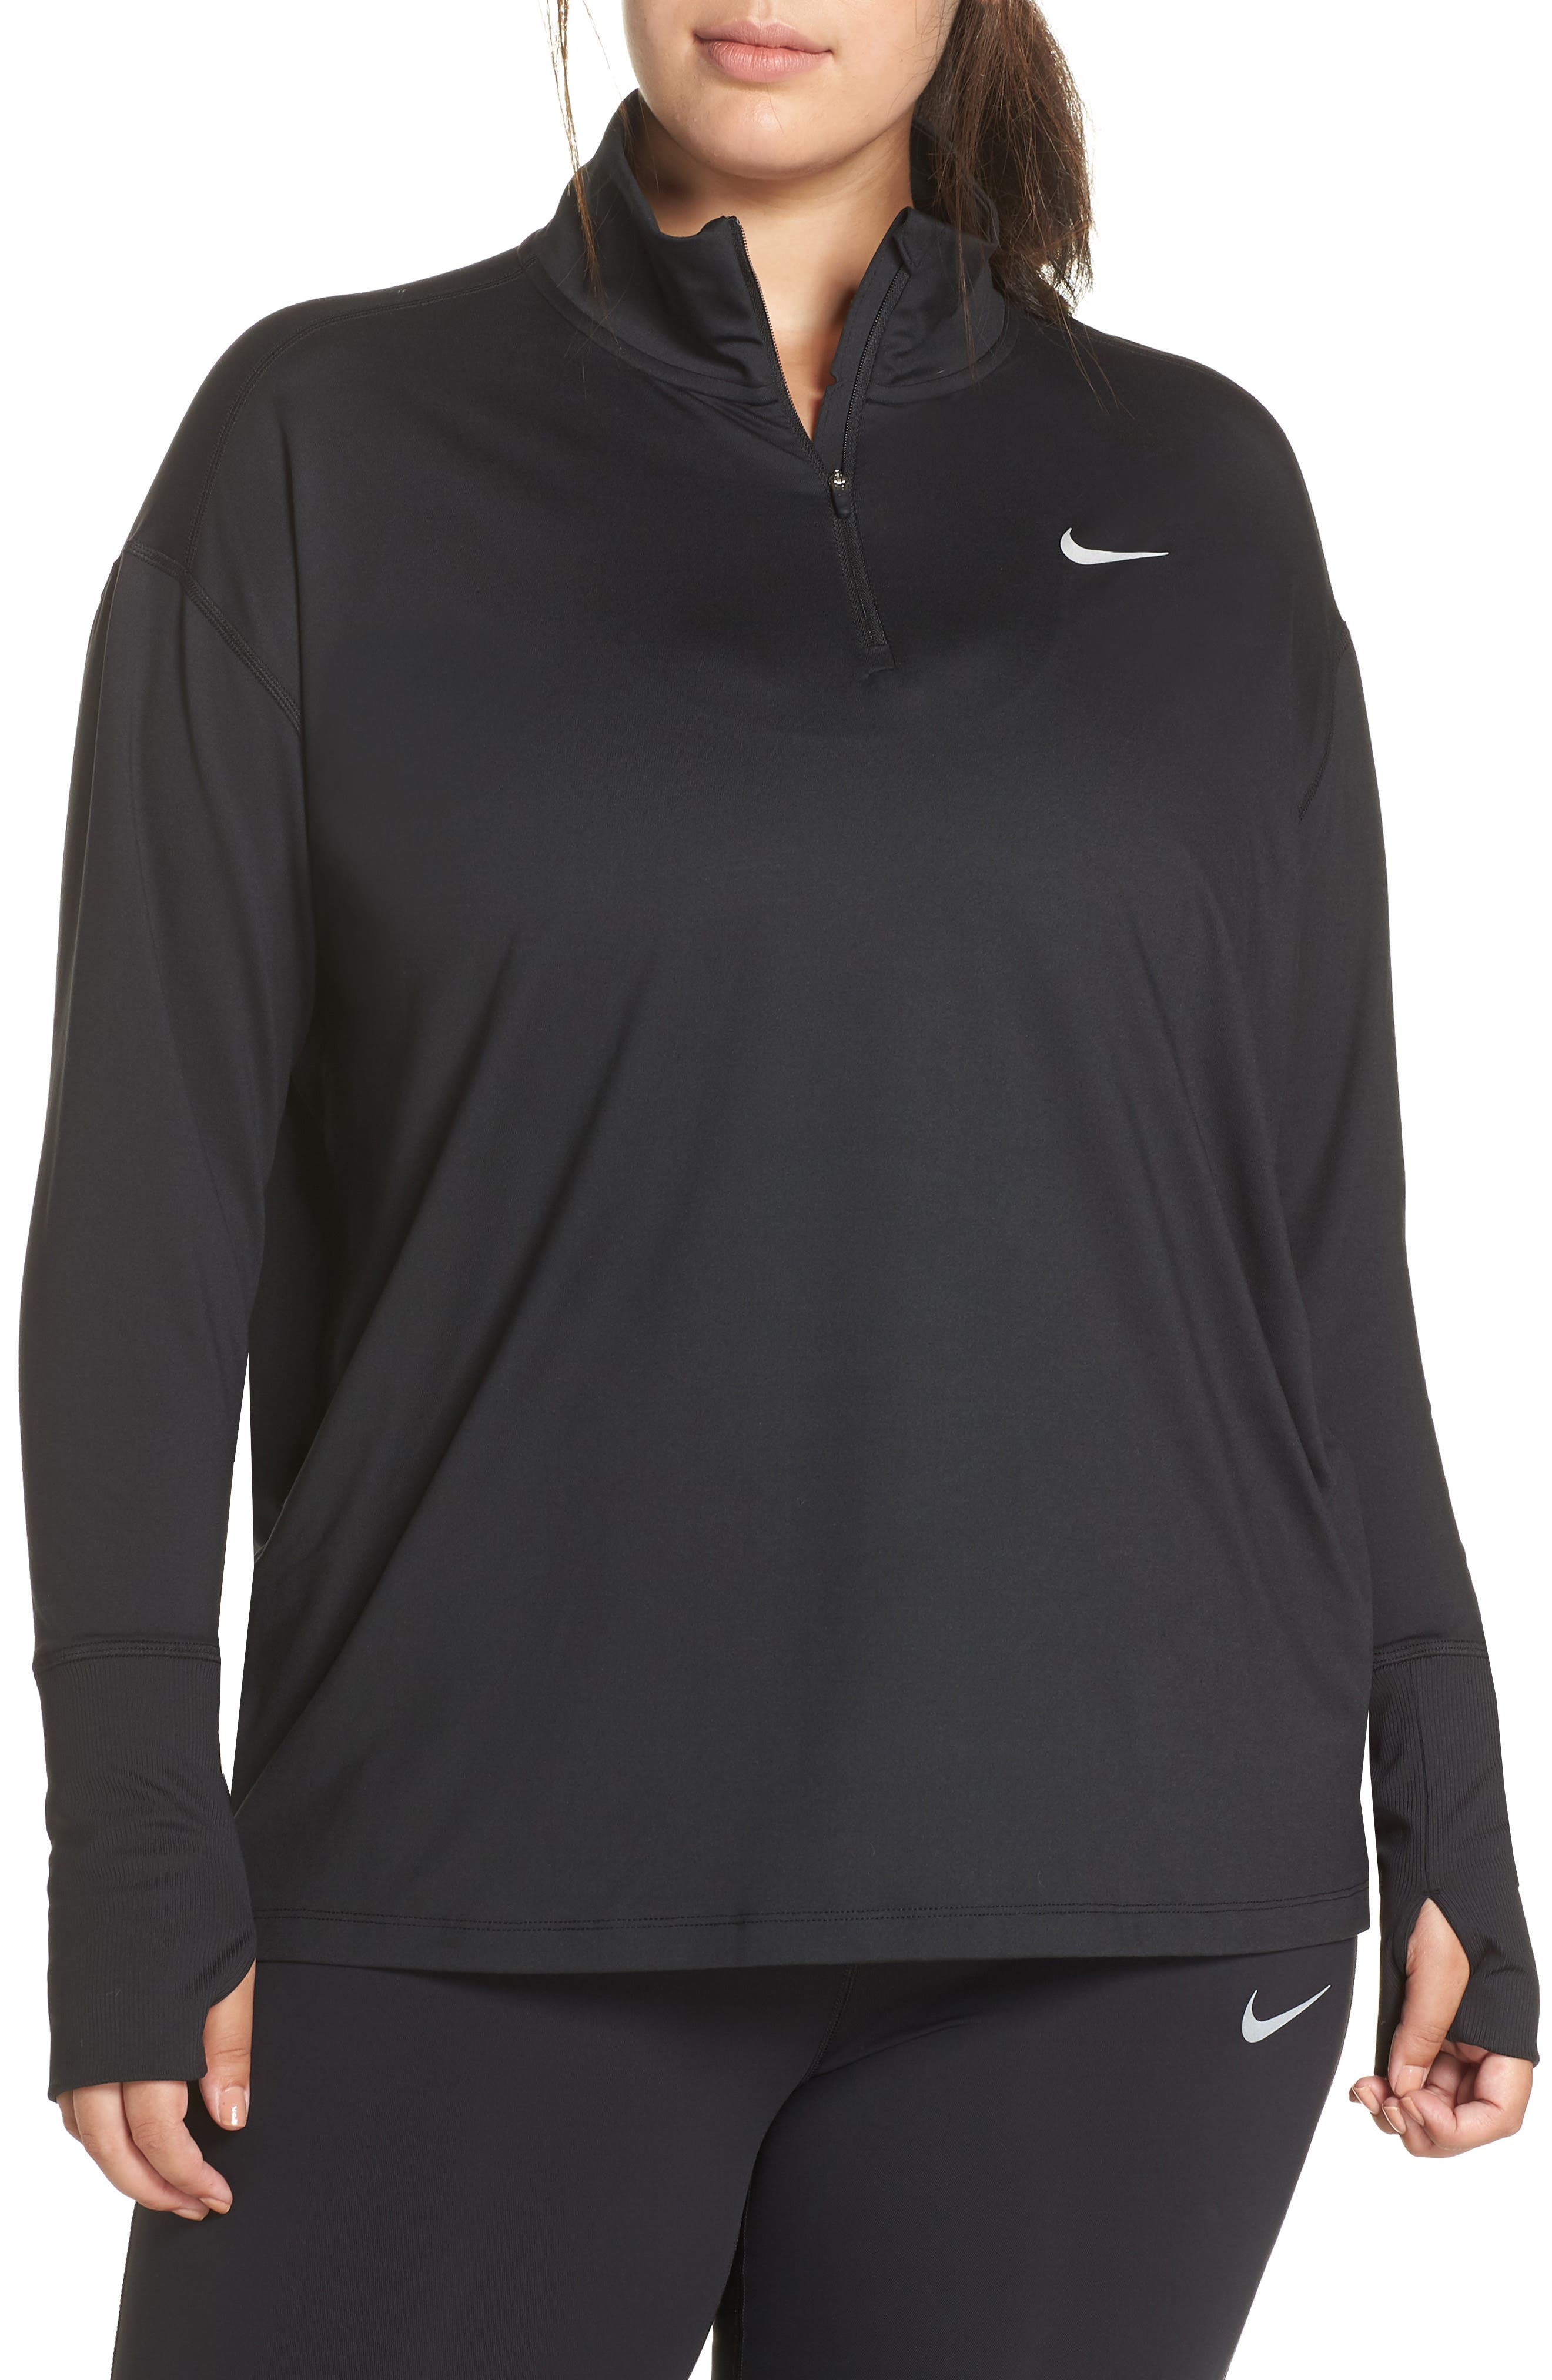 NIKE Element Long Sleeve Running Top, Main, color, BLACK